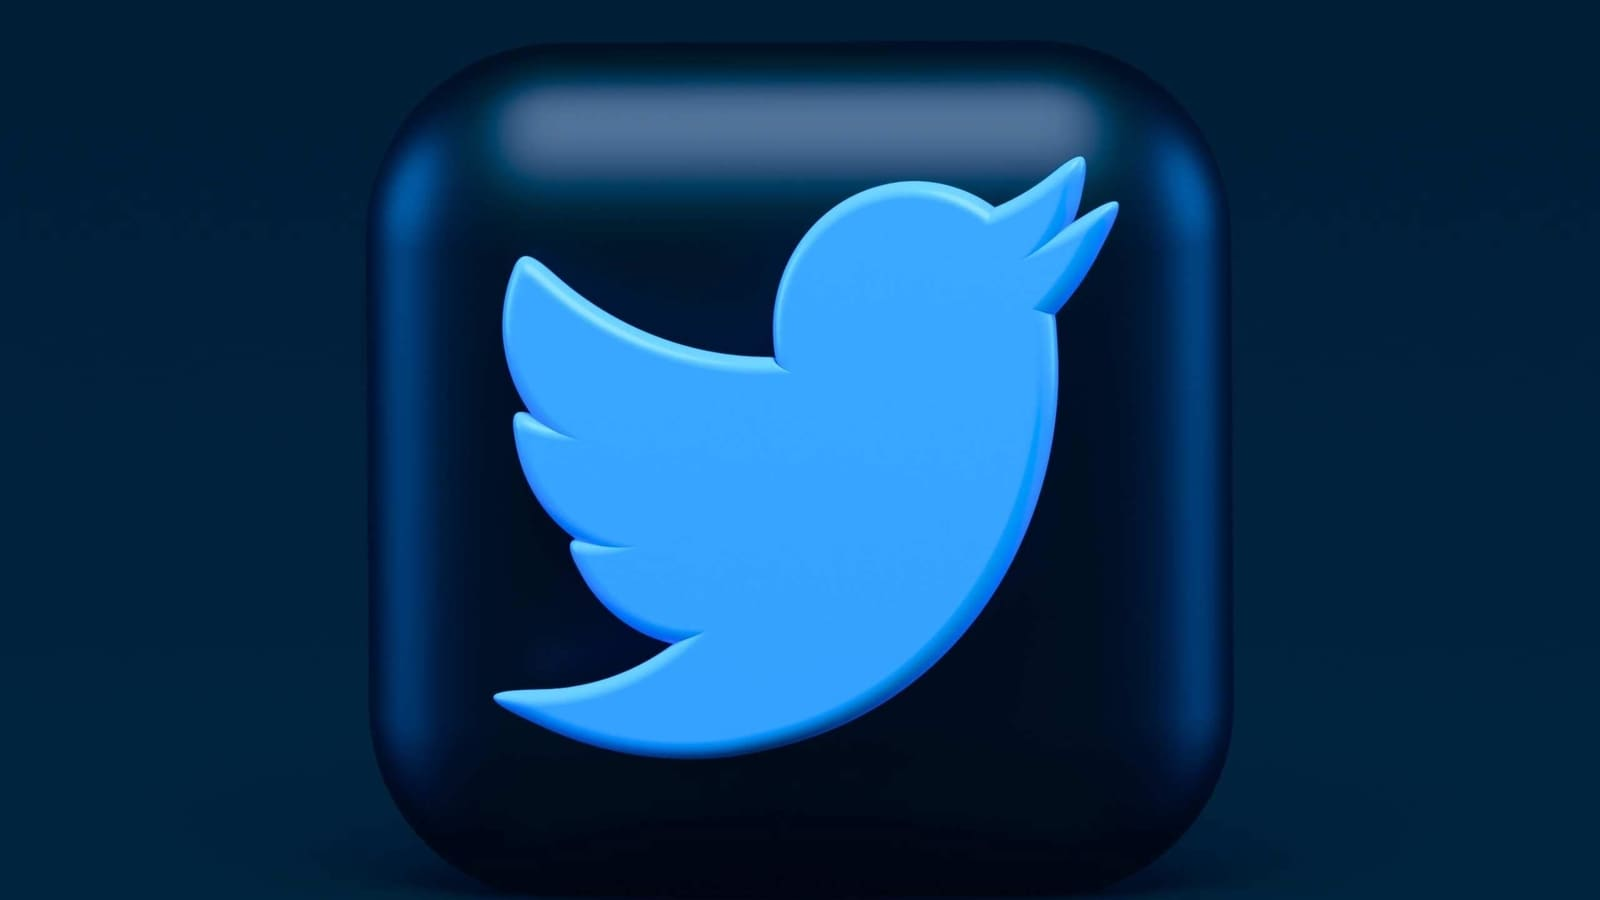 Twitter Blue, a paid subscription service, could start soon